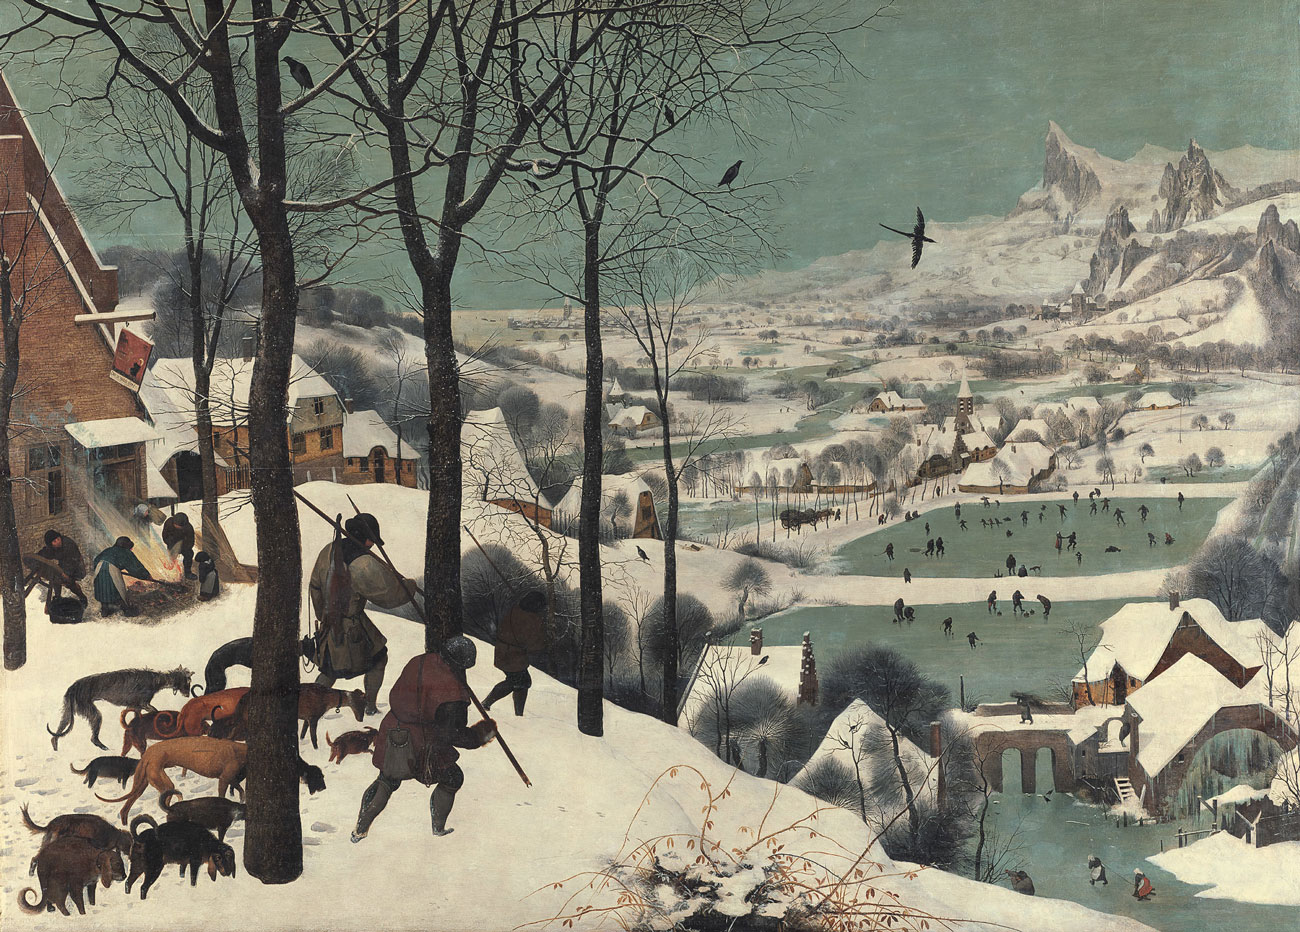 A snowy winter scene showing hunters with dogs in the foreground and peasants in various outdoor activities like skating and preparing food.